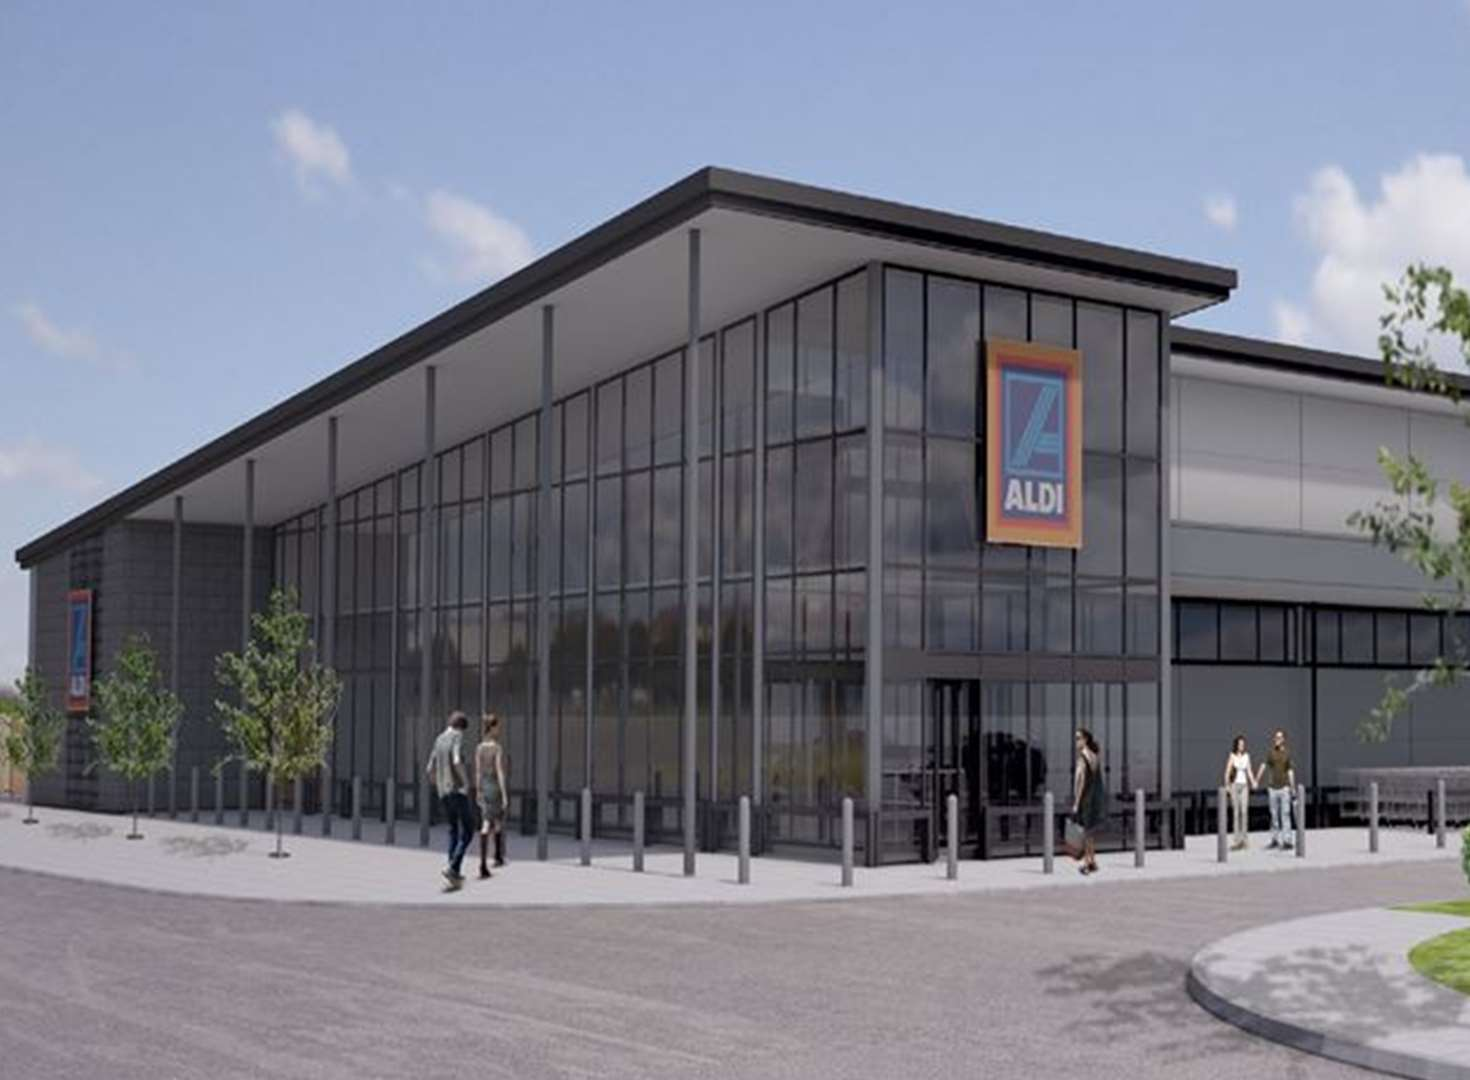 Town set to welcome its first Aldi store